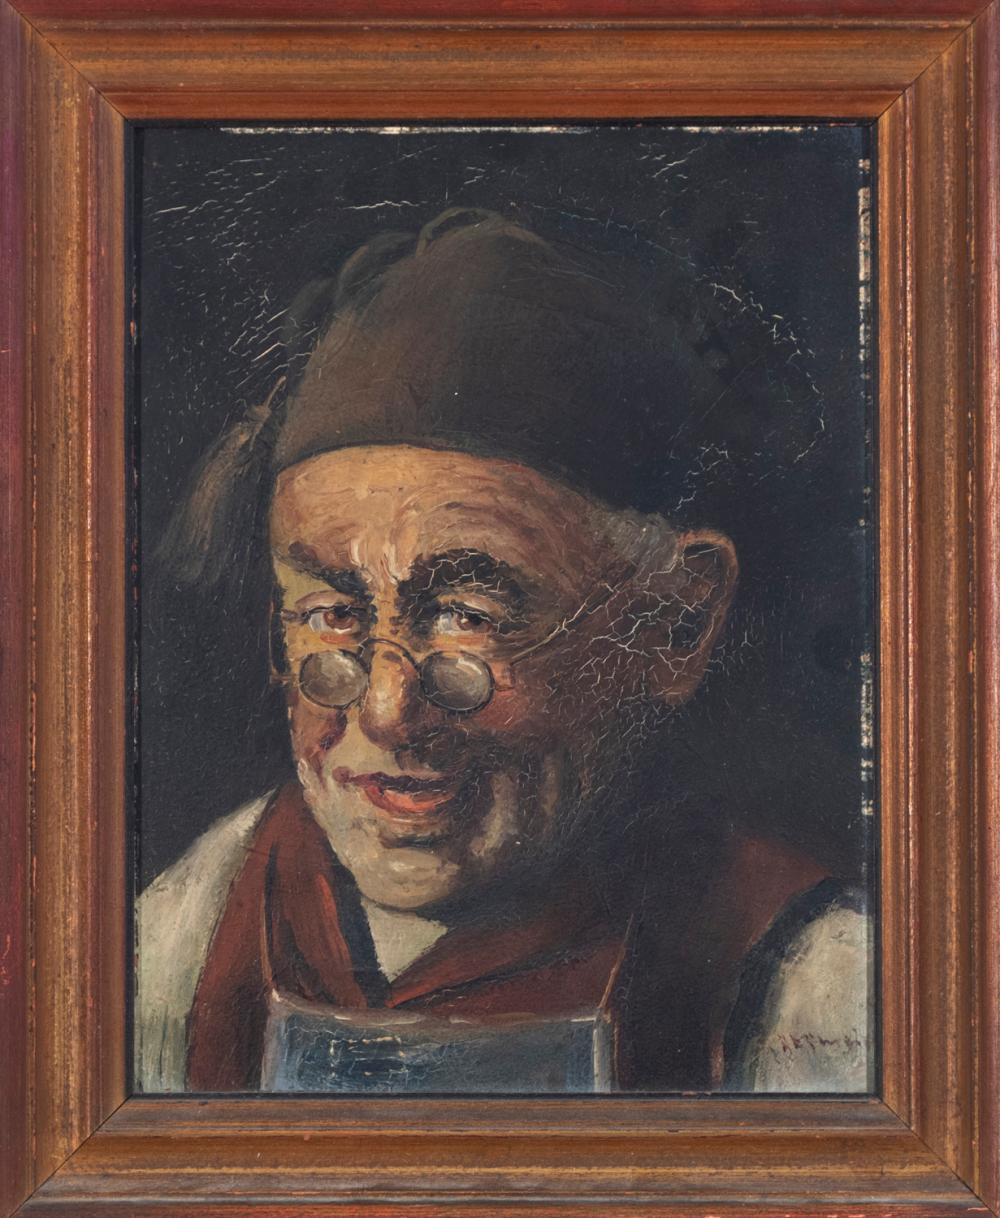 Continental School, early 20th century, Portrait of a Gentleman, oil on board, 10 x 7 1/2 inches